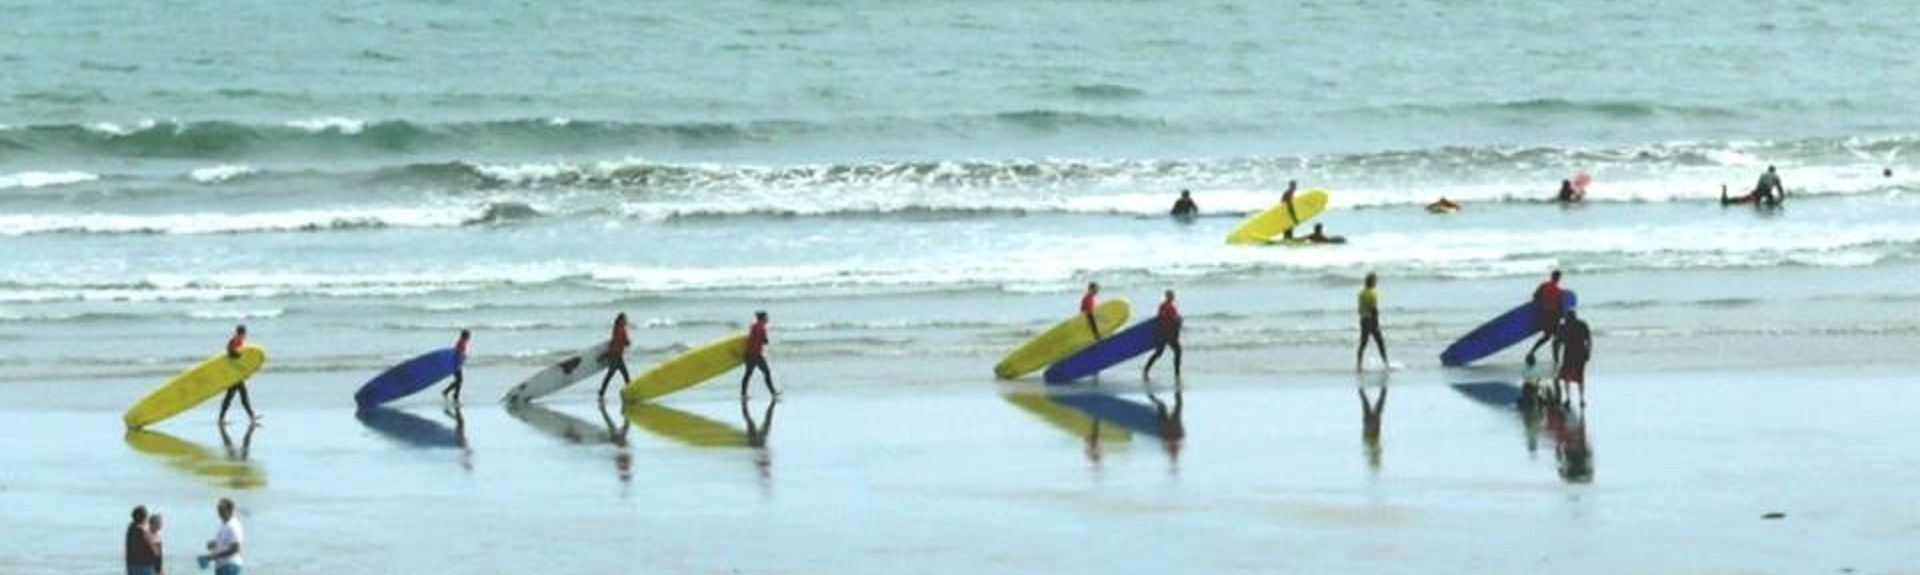 Bandon, IE holiday lettings: Houses & more | HomeAway